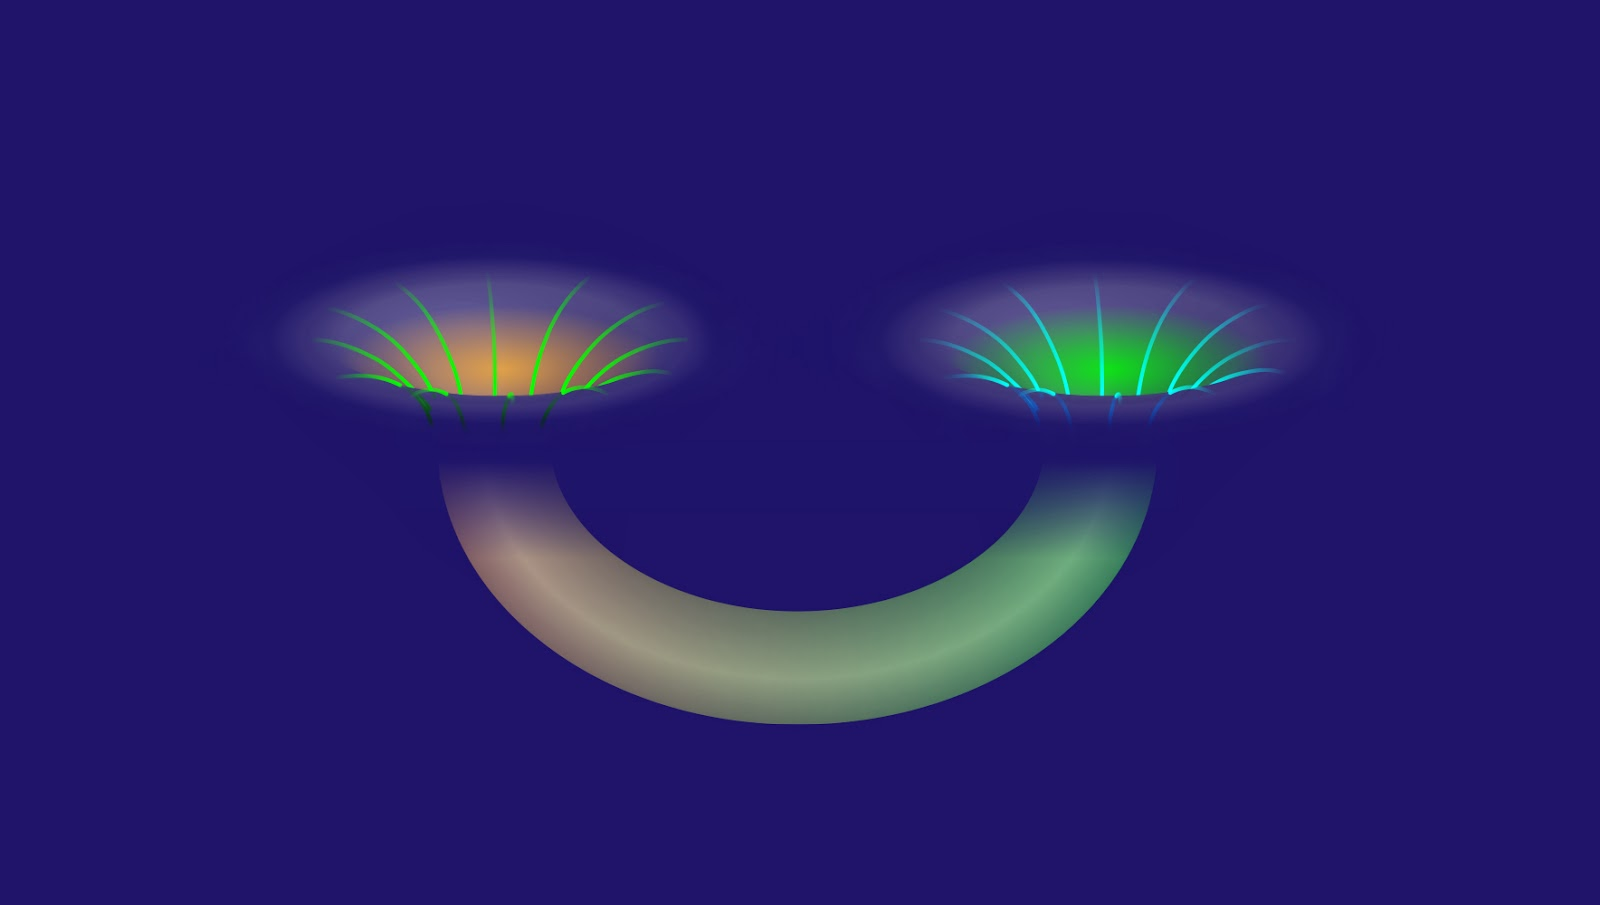 Black holes are portals to other universes according to